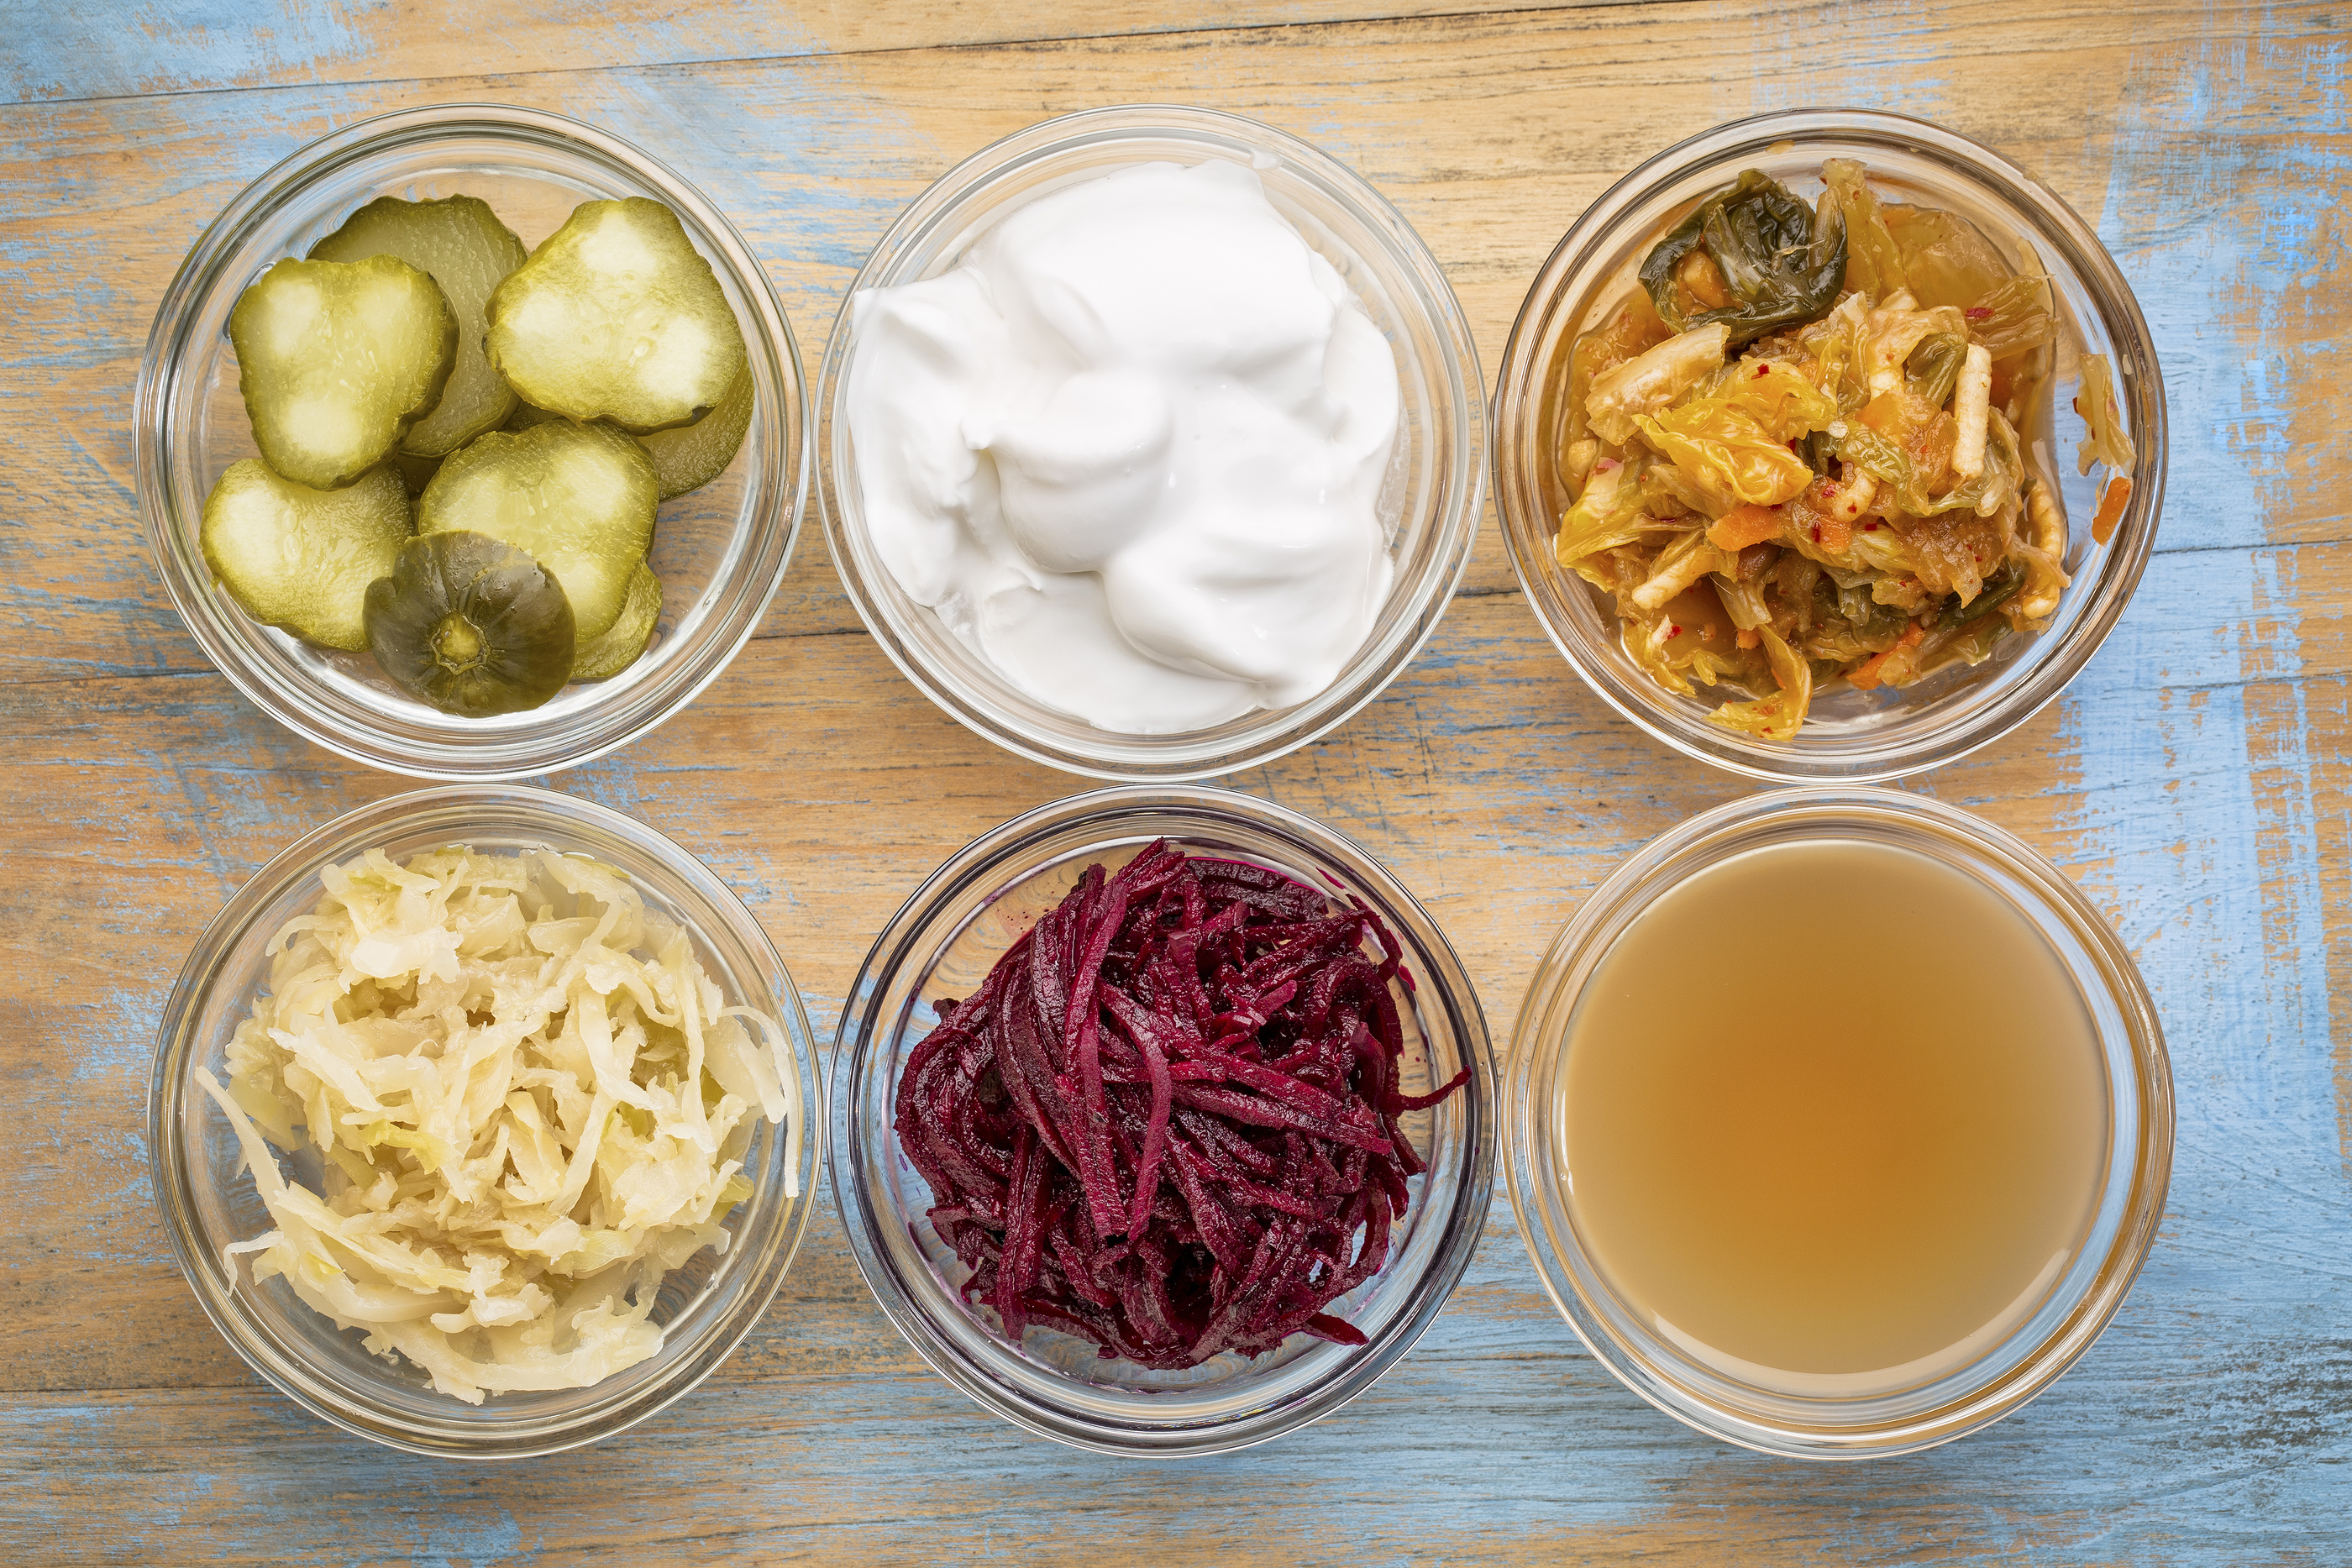 14 Great Probiotic Foods for Increased Health and Weight Loss